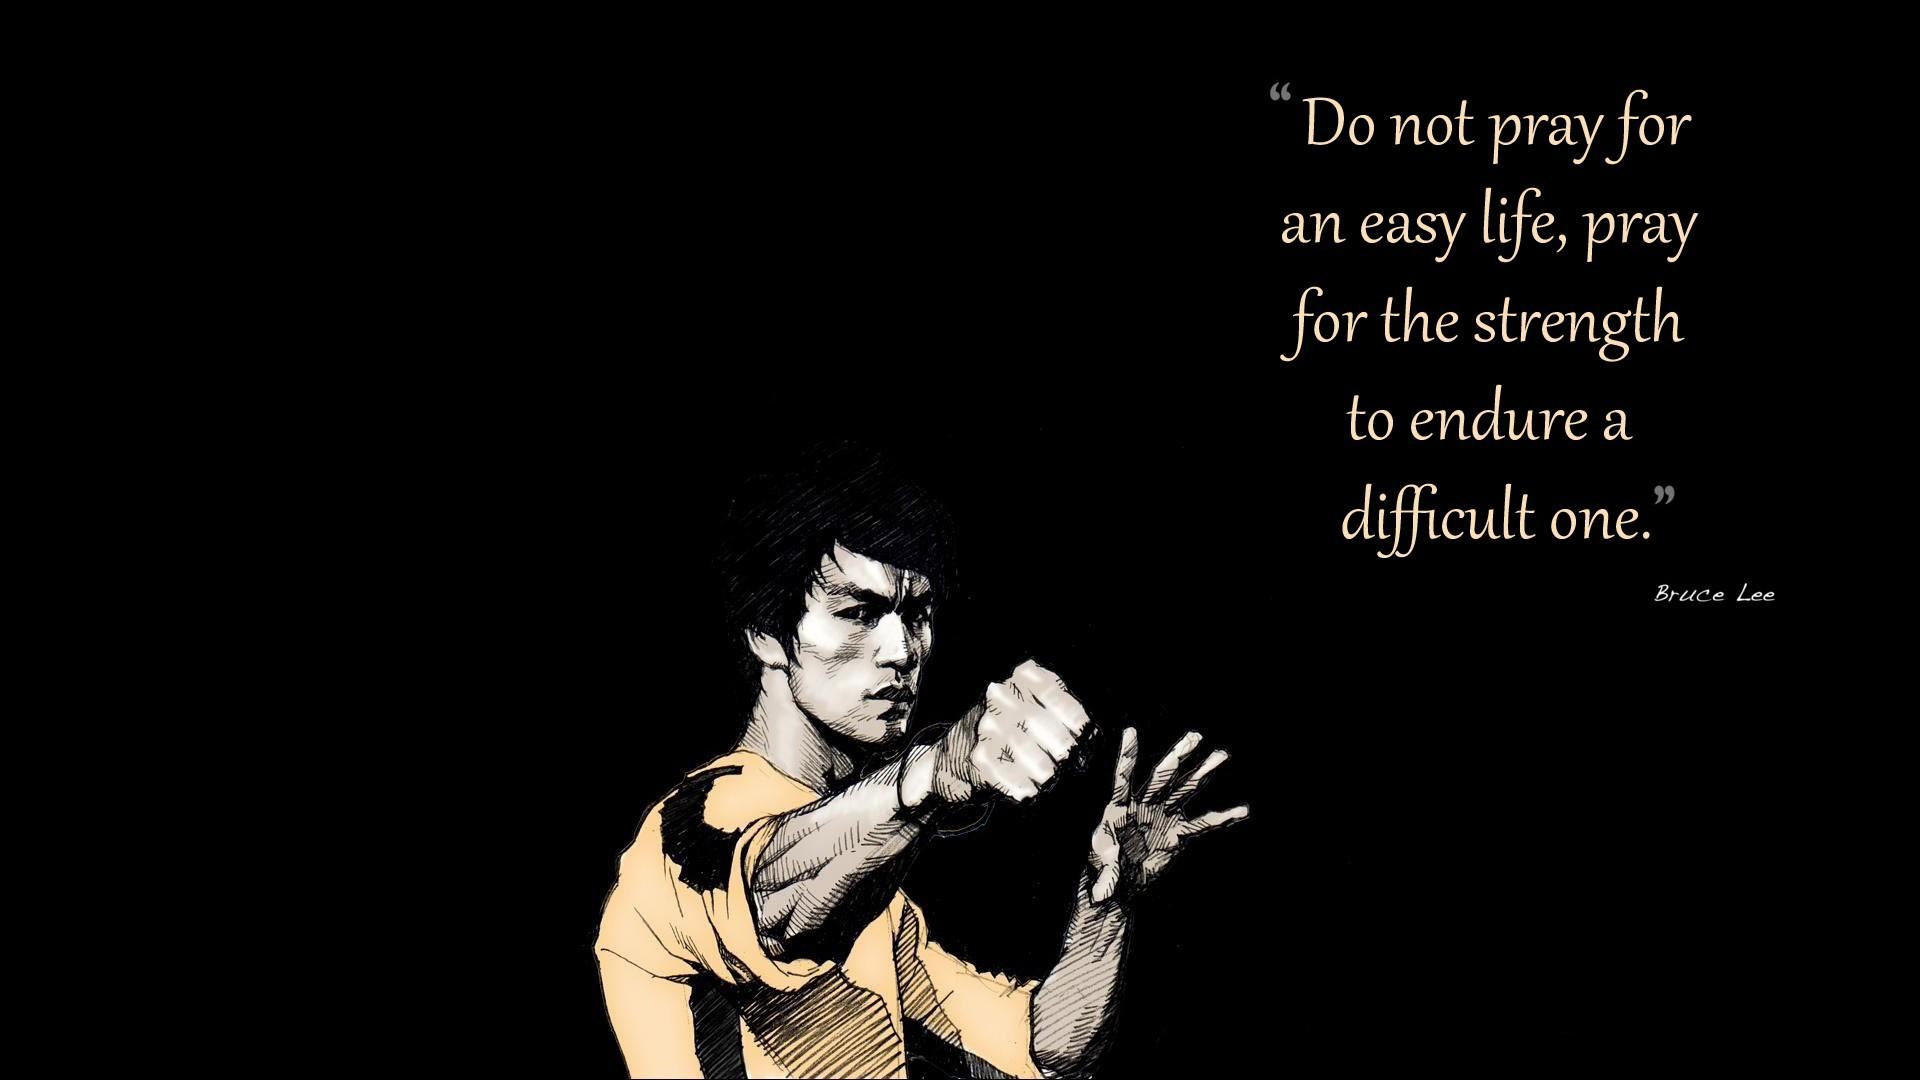 Bruce Lee quotes artwork black background - Wallpaper (#1758366) / Wallbase.cc